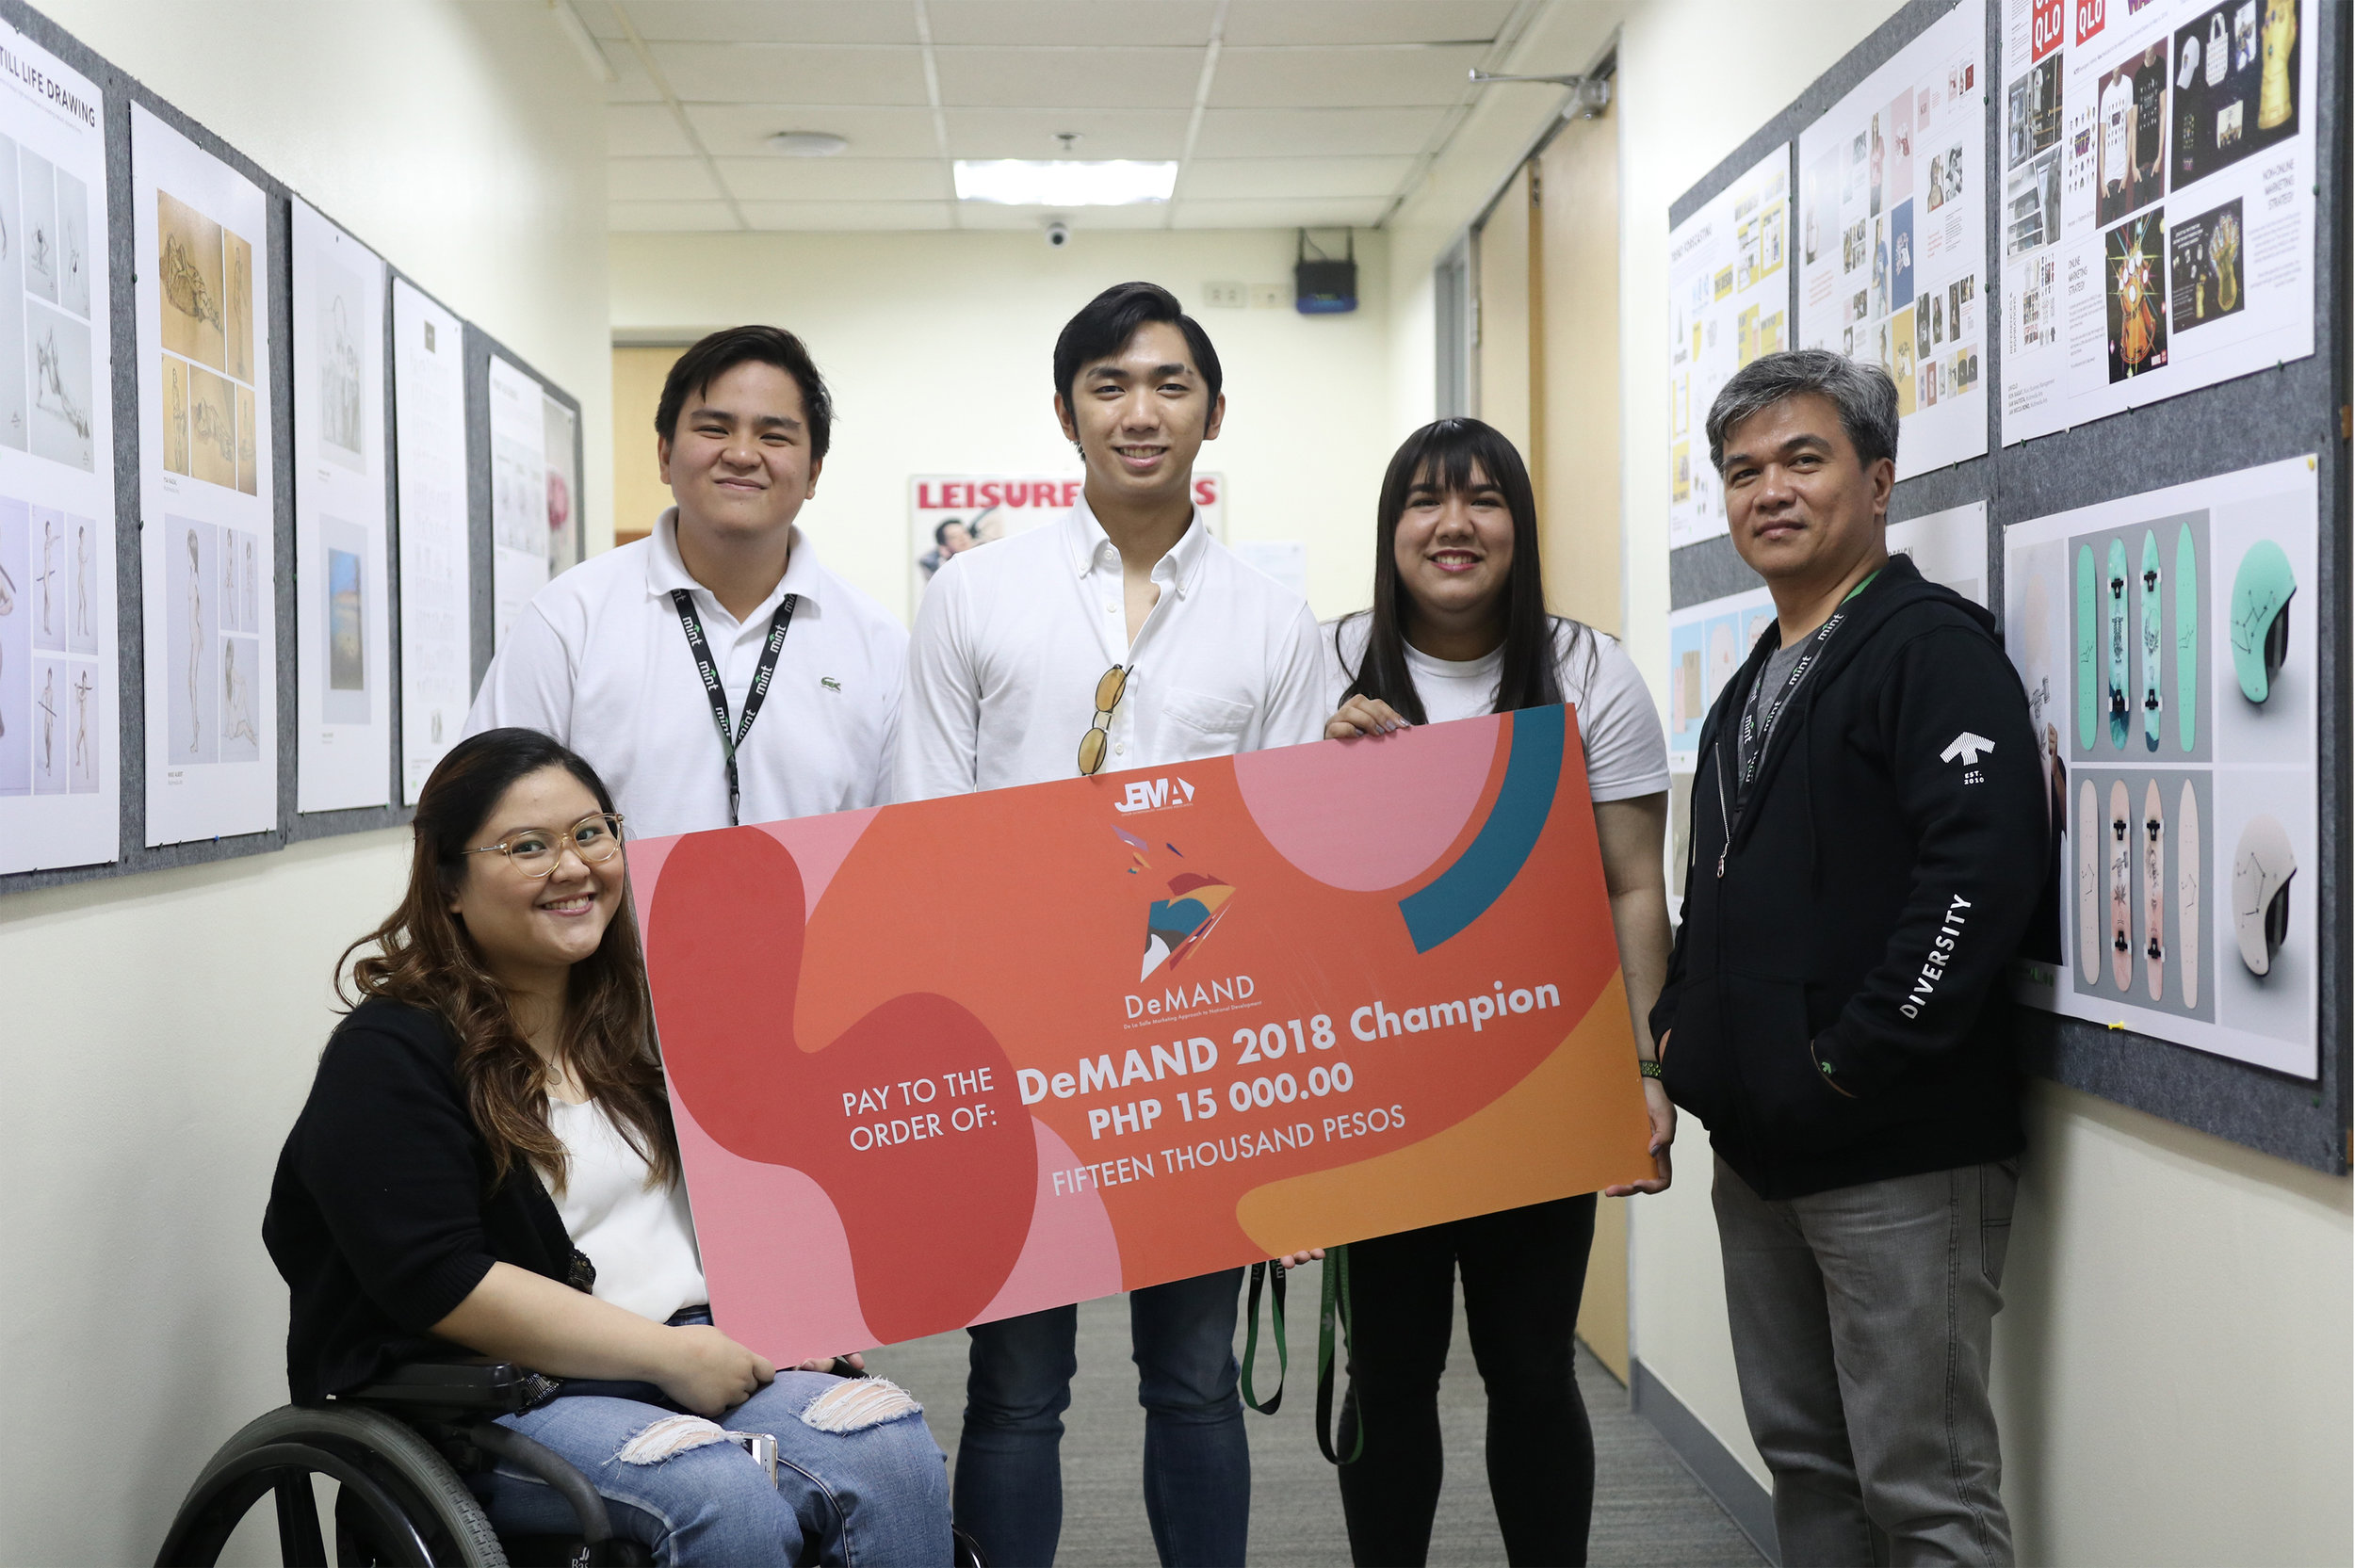 MINT Junior Marketing Association (JMA) were grand champions at De La Salle University Manila's marketing competition, DeMAND. It is sponsored by BAYO. They won the grand prize with their business pitch of having BAYO collaborate with local artists and small businesses to sustain the products they sell.